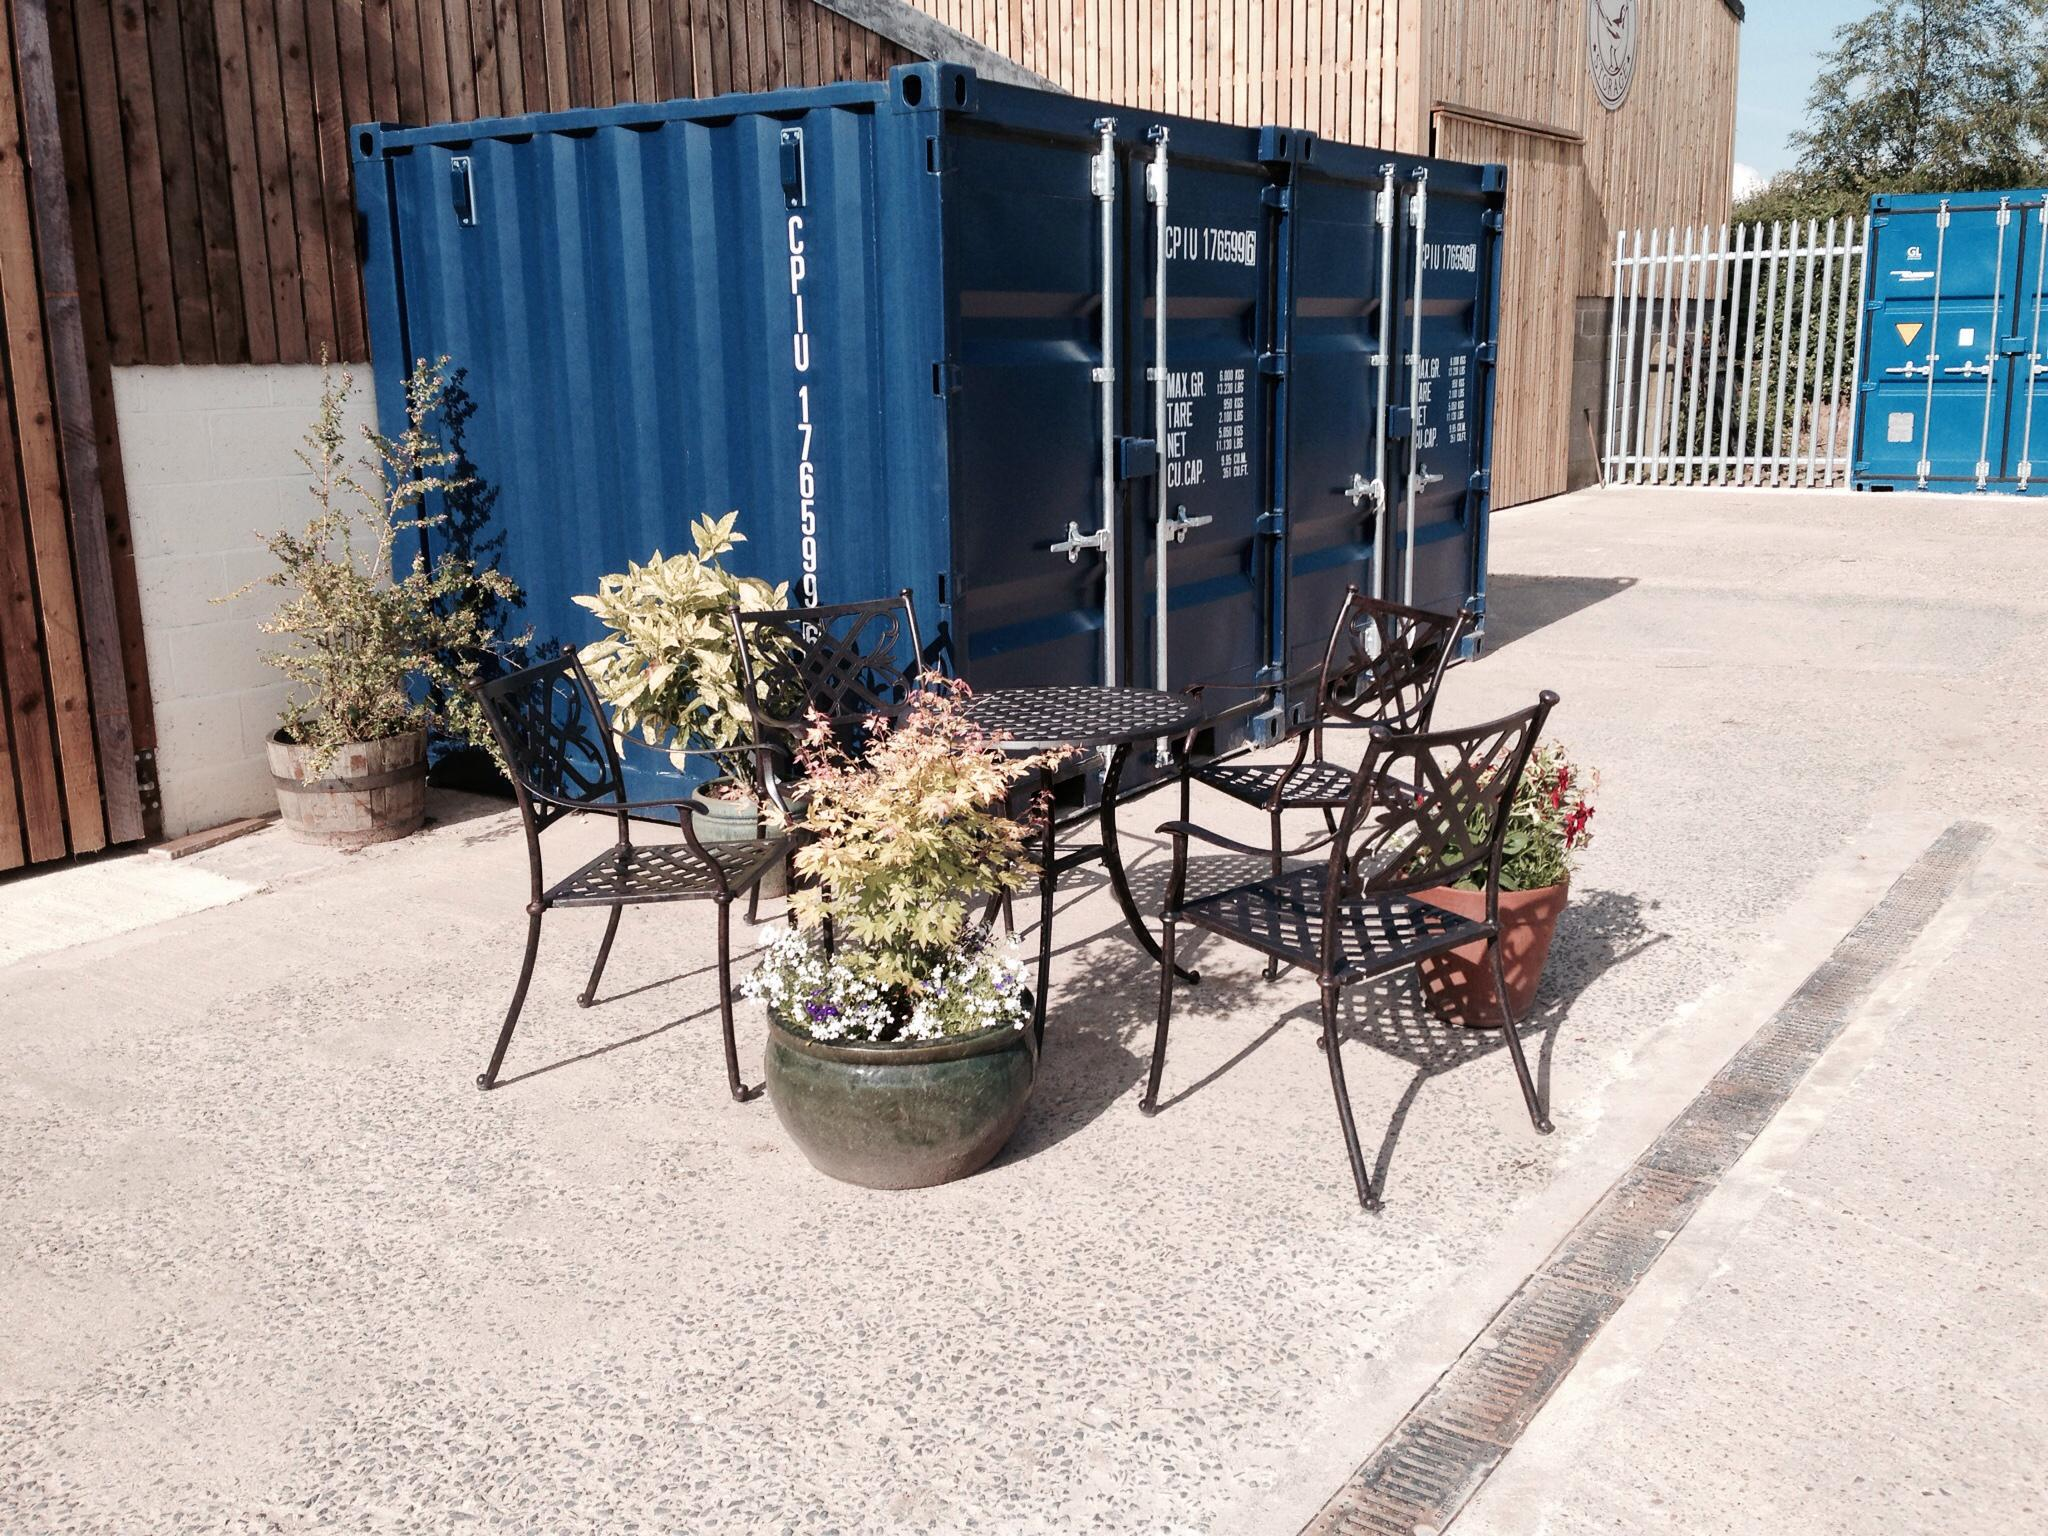 RT @WagtailStorage: Own a shop in #Melbourne, Derbyshire and need storage? Our immaculate yard is just 5 mins away! 01530 222179 http://t.c…